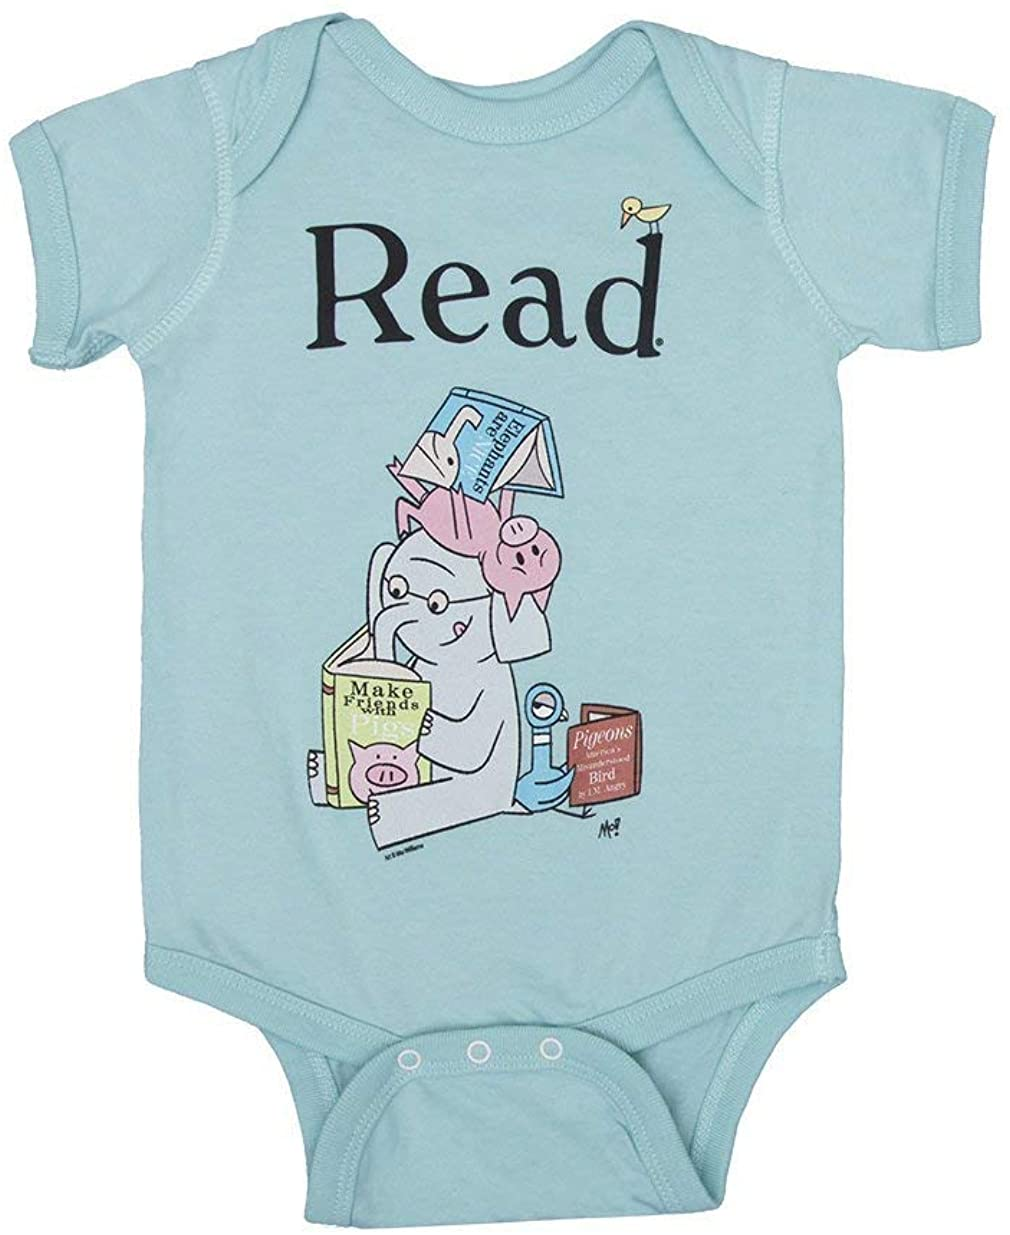 Out of Print Elephant & Piggie Read Baby Bodysuit 18 Months